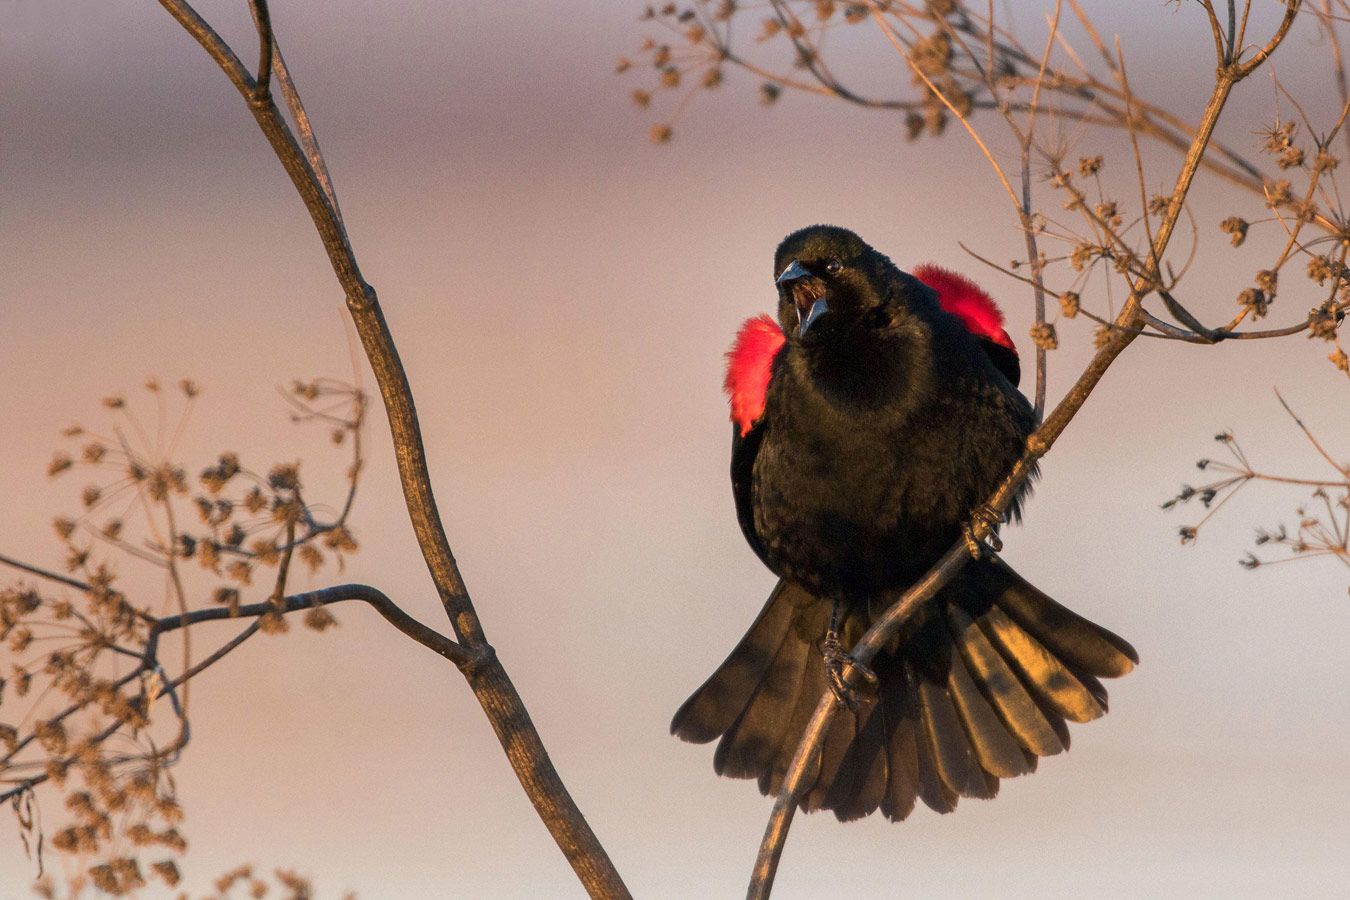 Red-winged Blackbird, © Donald Quintana, Professional Honorable Mention, Audubon Photography Awards